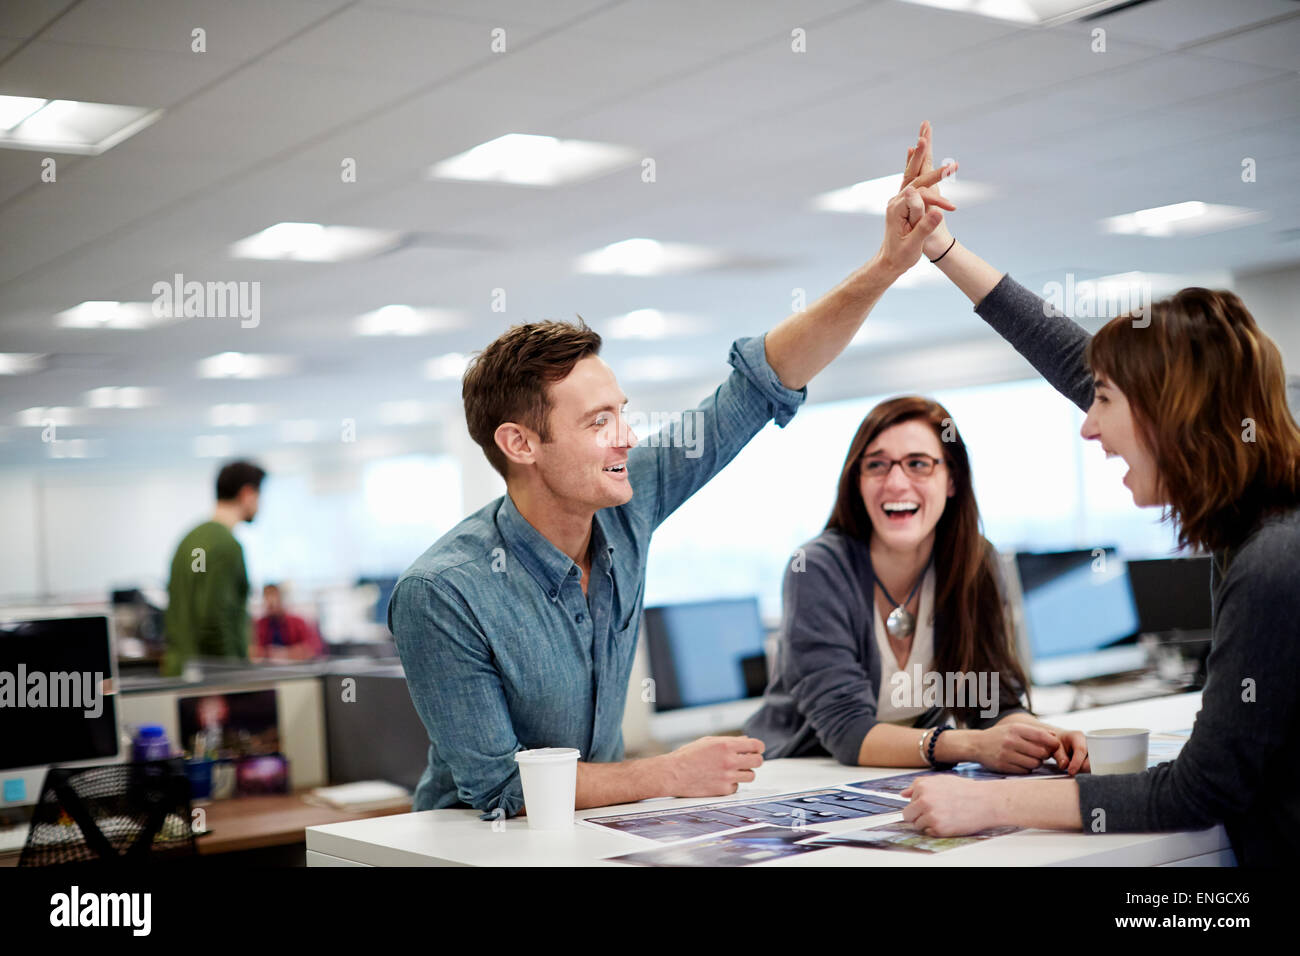 Three people in an office looking at photographs and making a high five gesture. - Stock Image